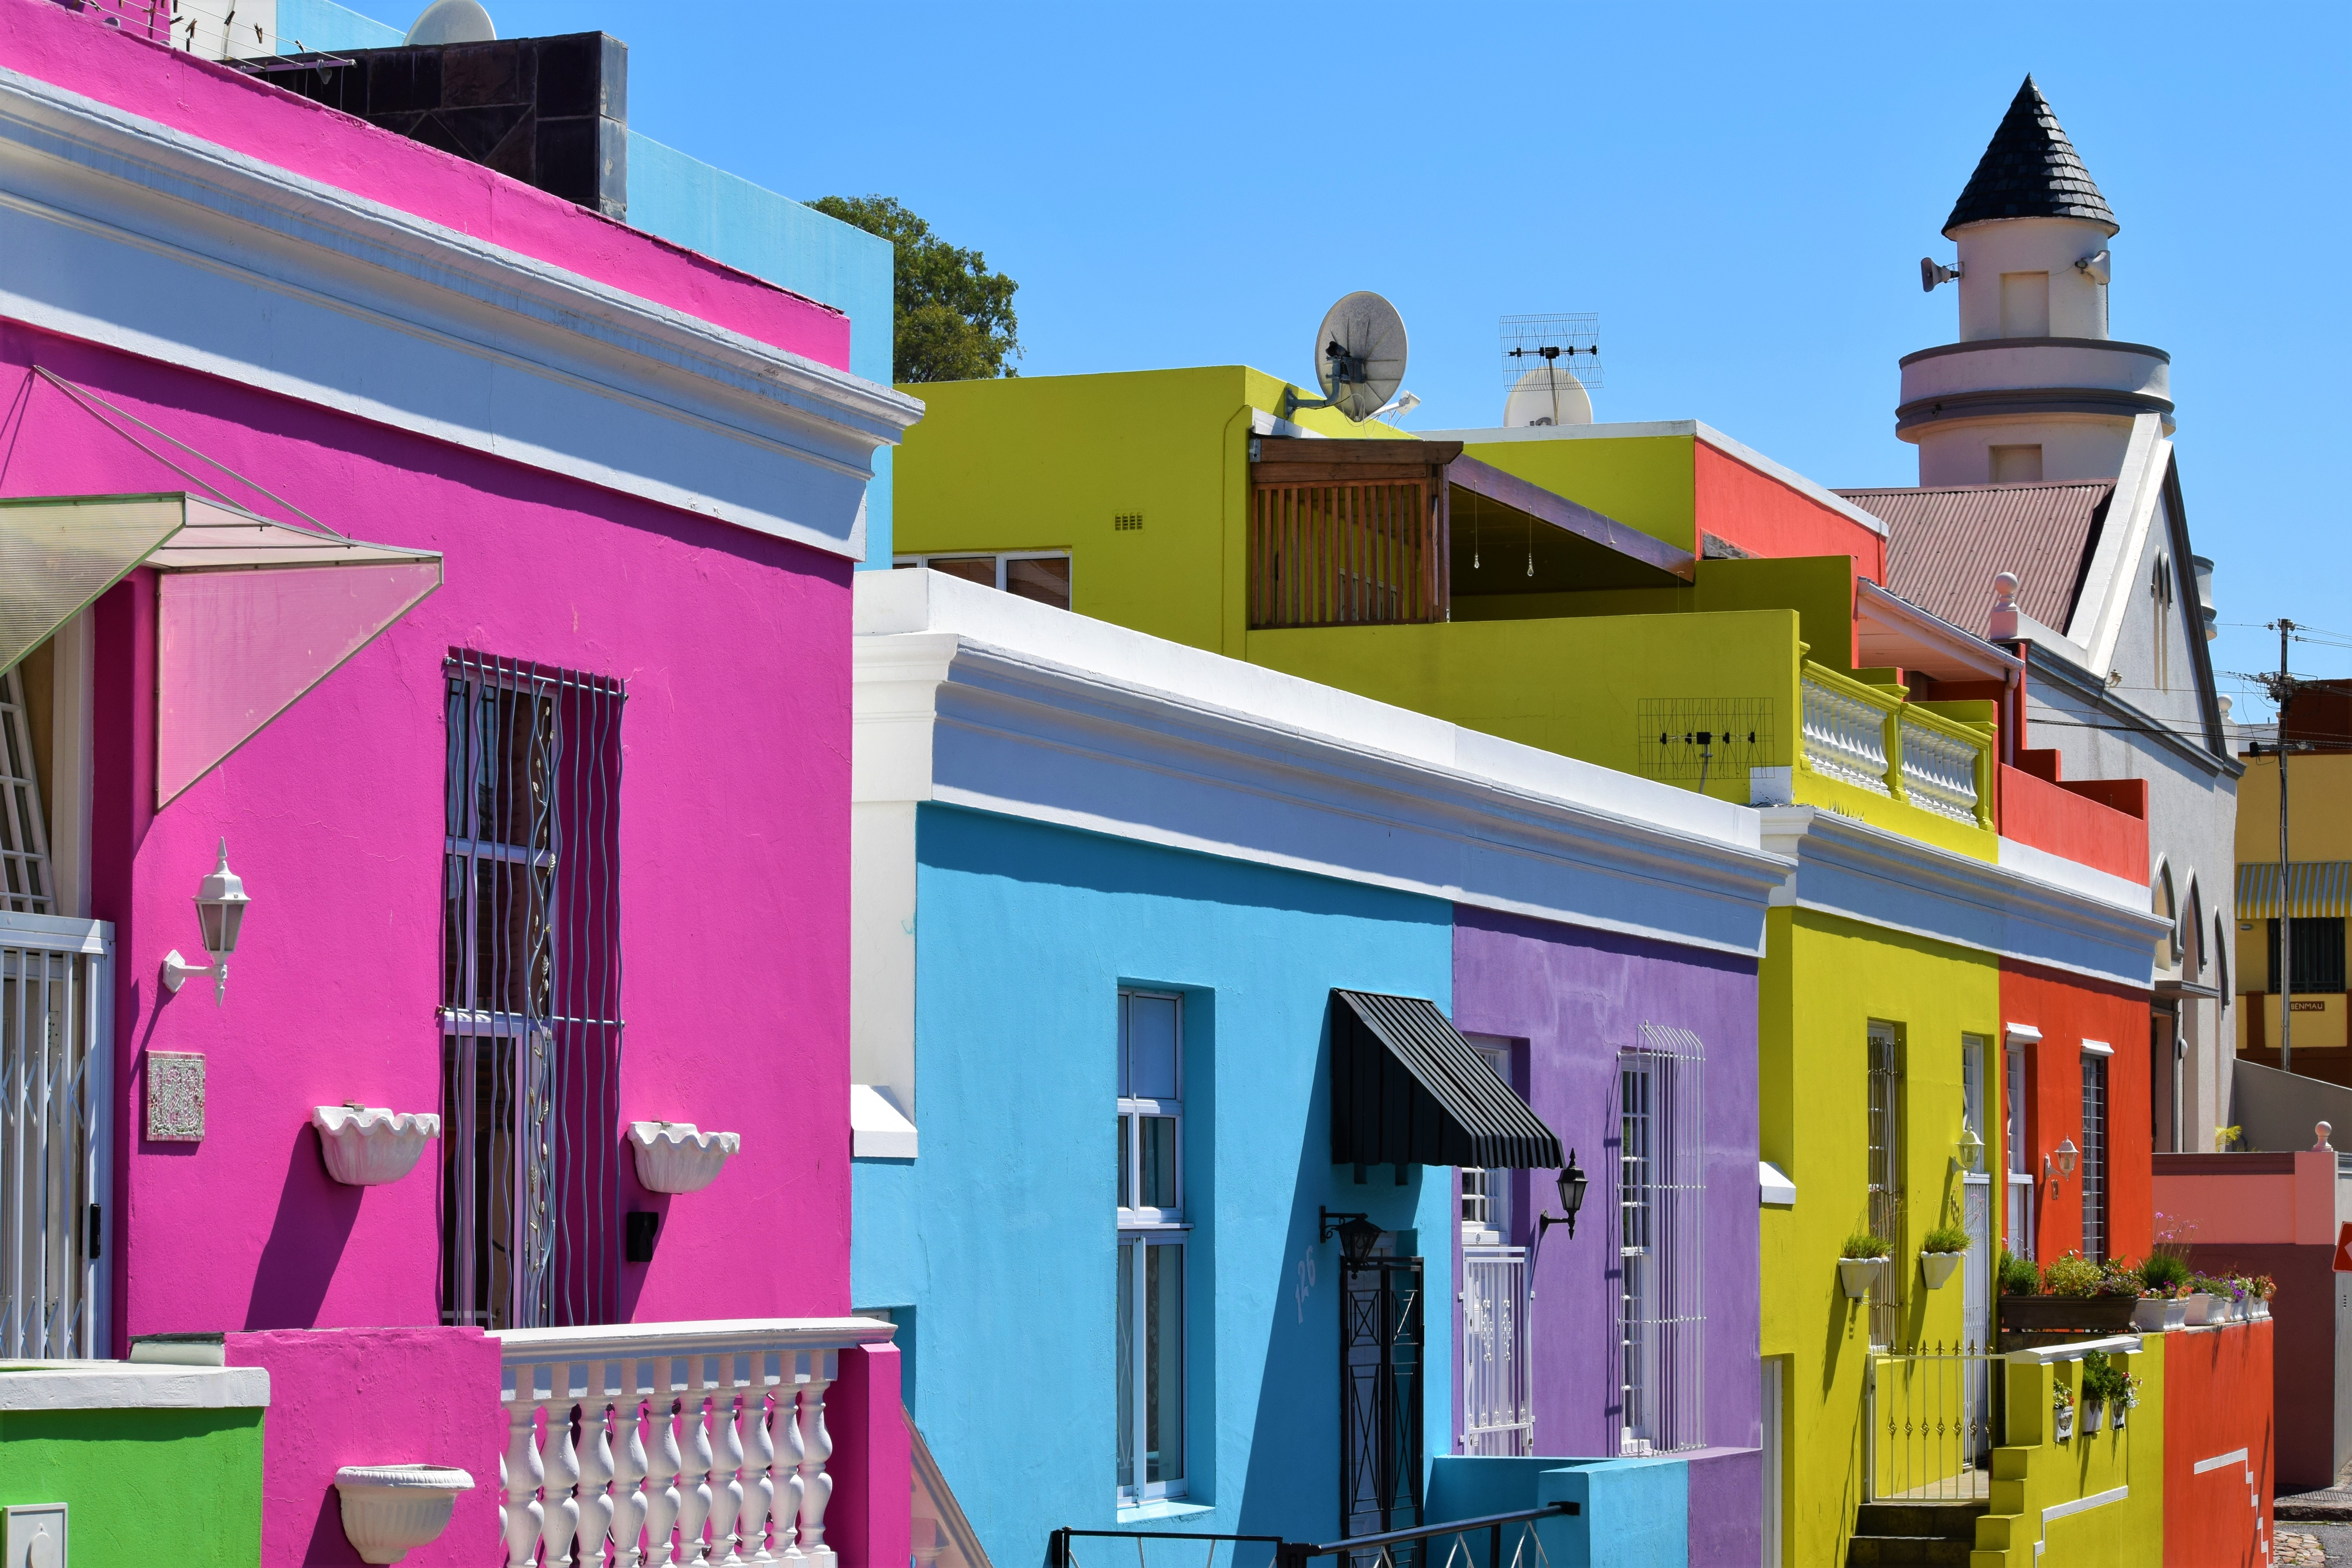 Image of colorful buildings in Bo-Kaap, South Africa